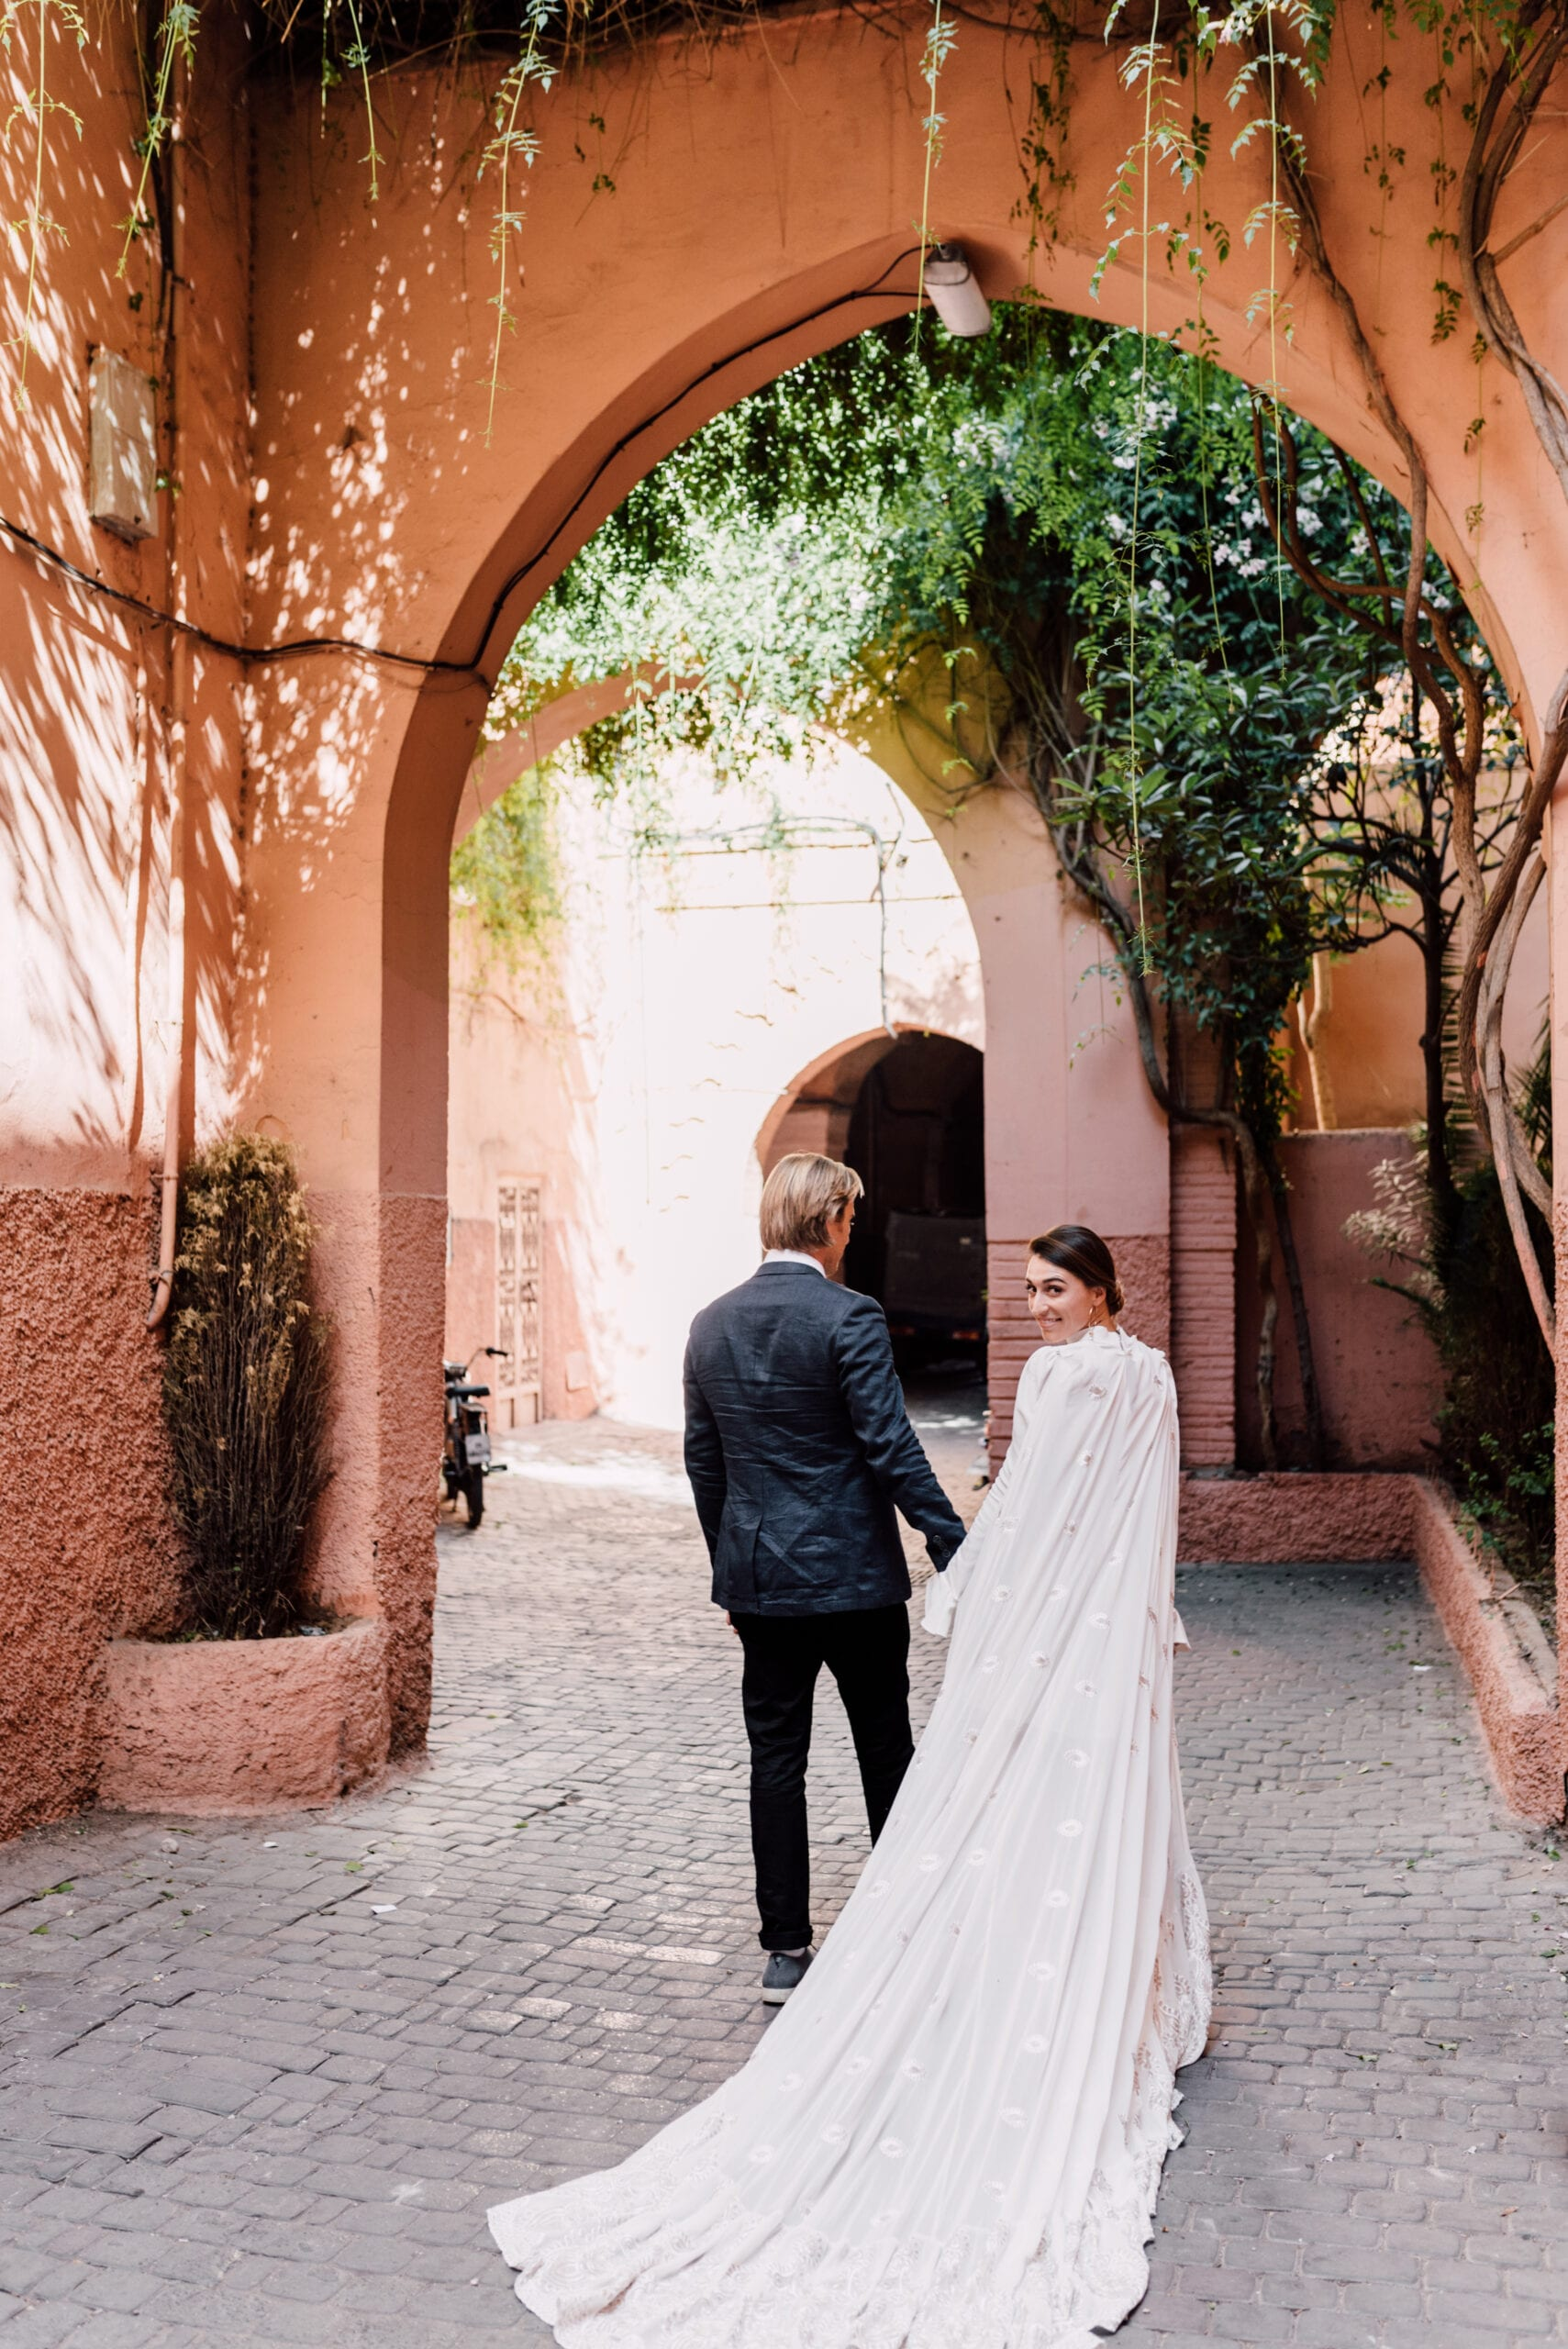 wedding planner marrakech destination morocco marriage weddings elopement the souk department elopement